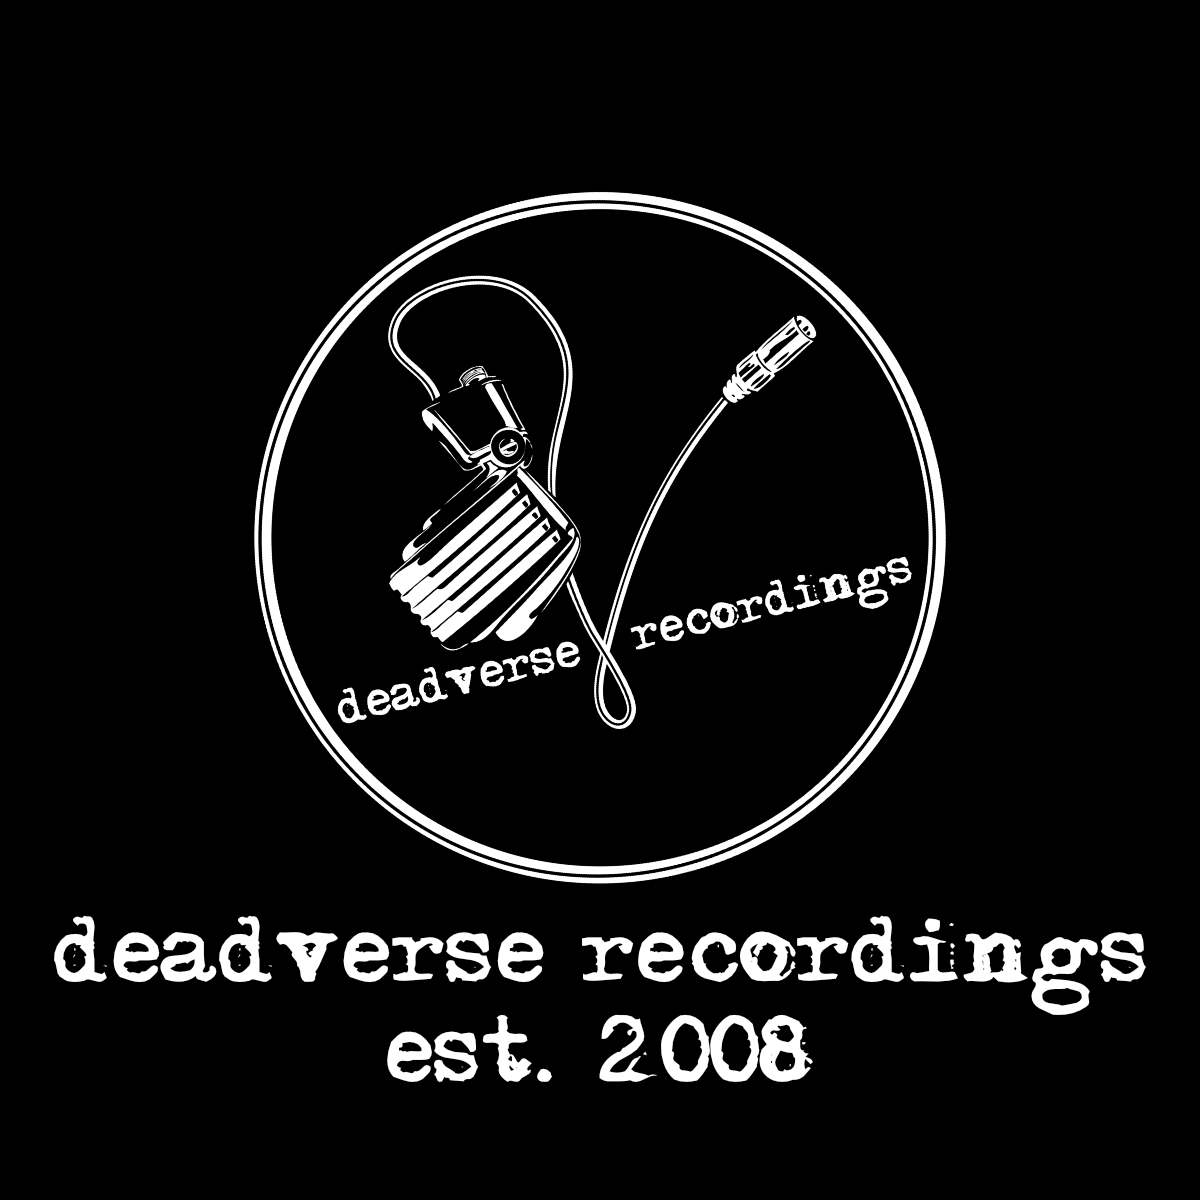 deadverse recordings